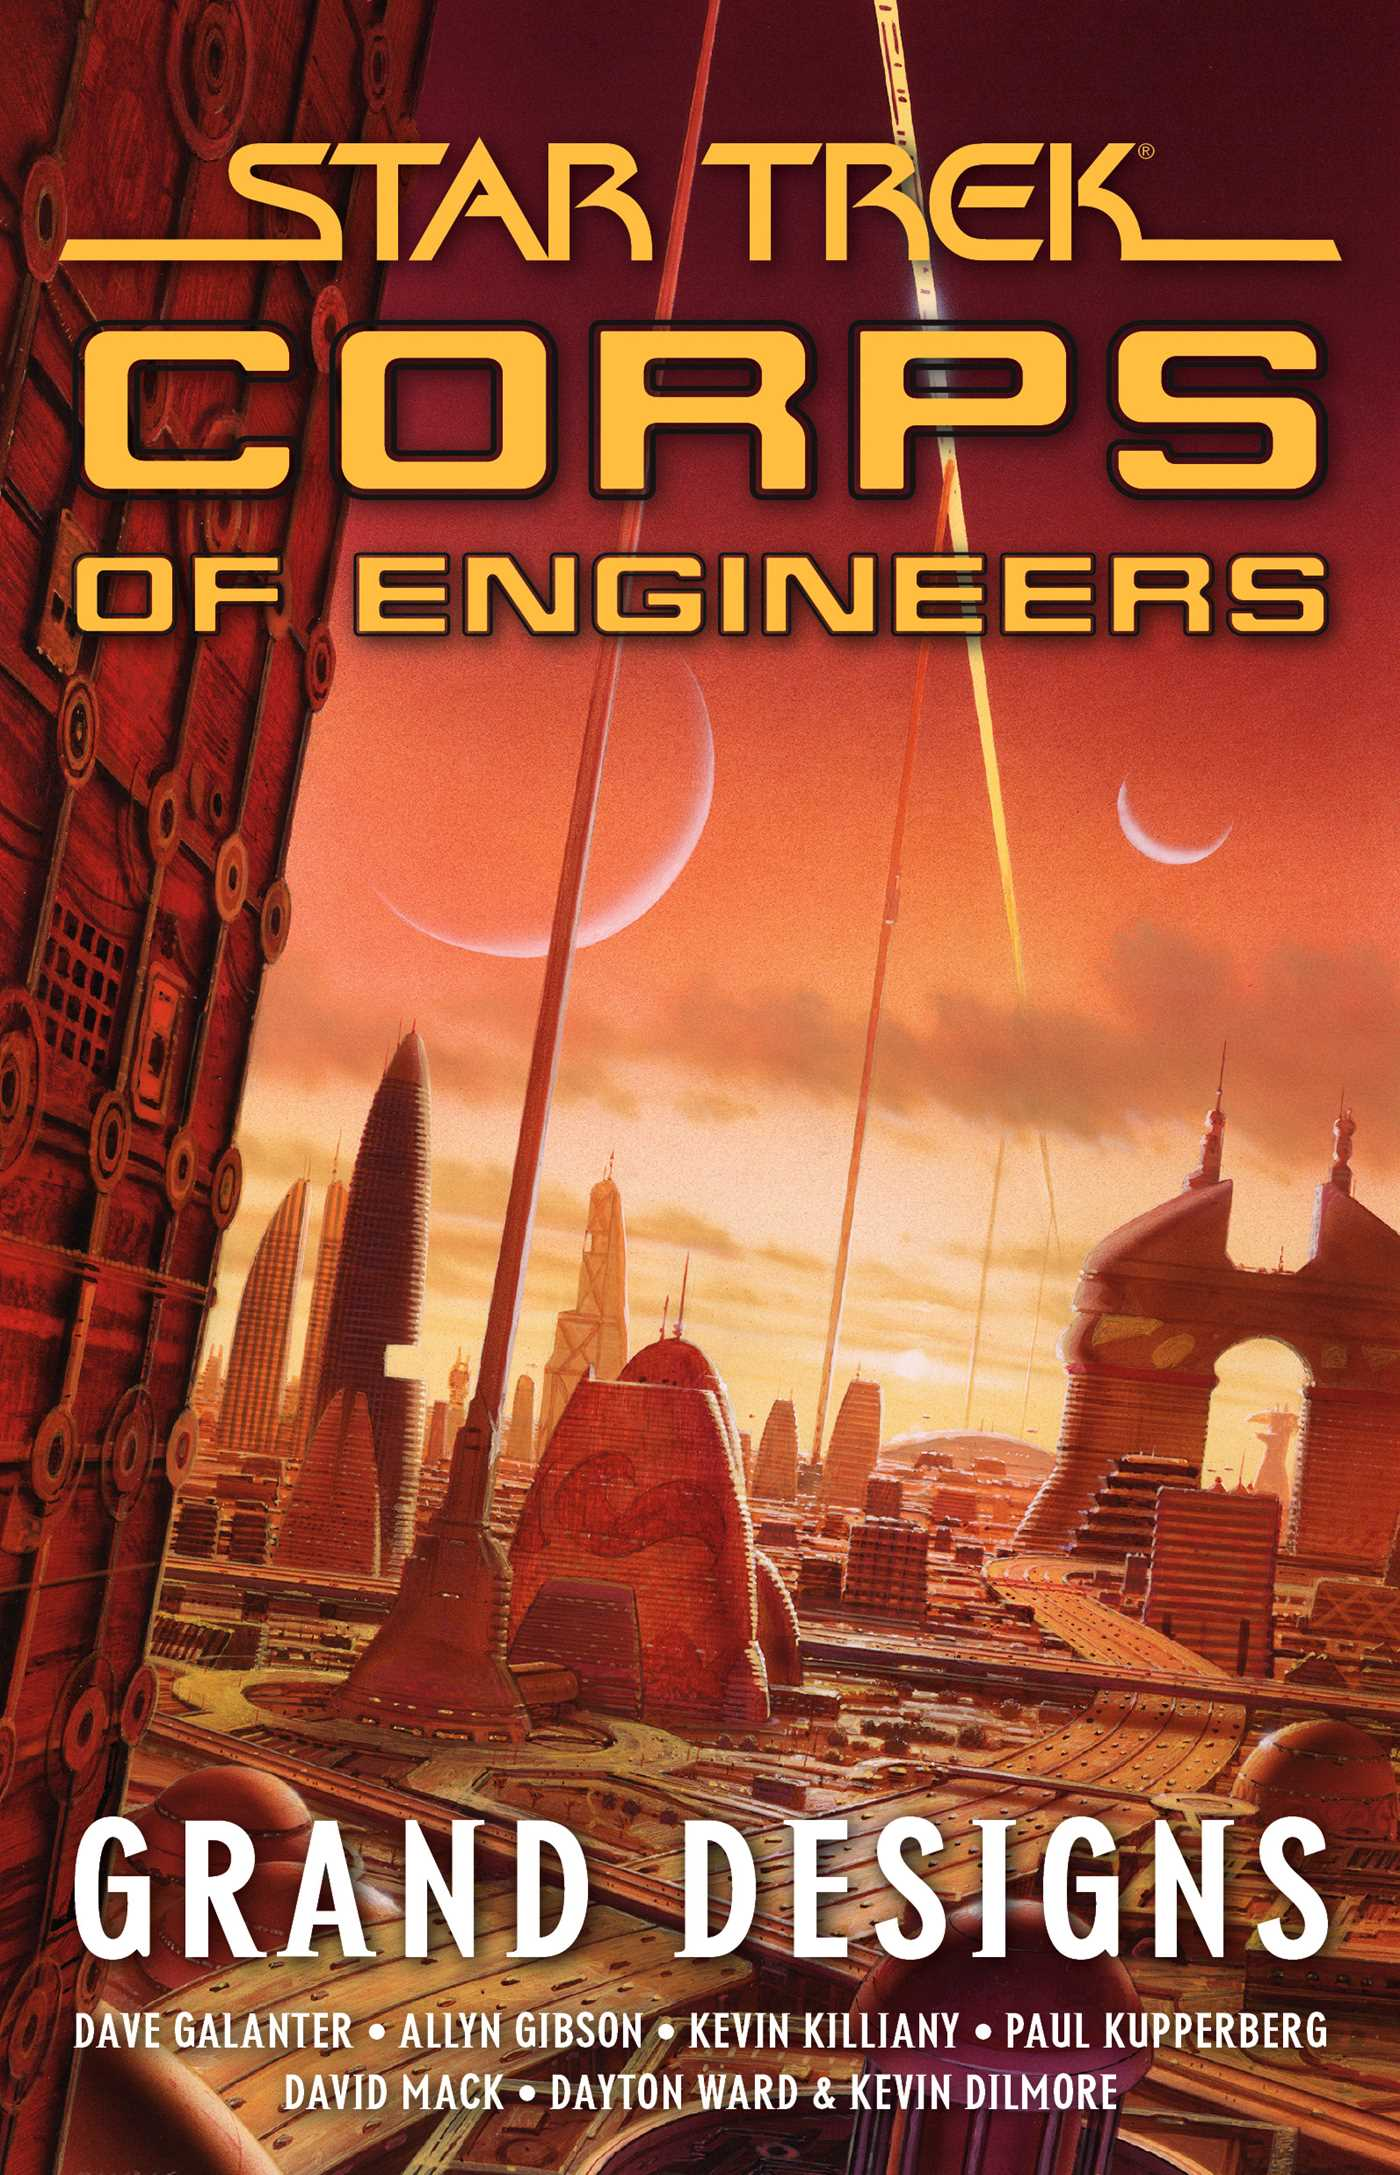 Star trek corps of engineers grand designs 9781416579168 hr